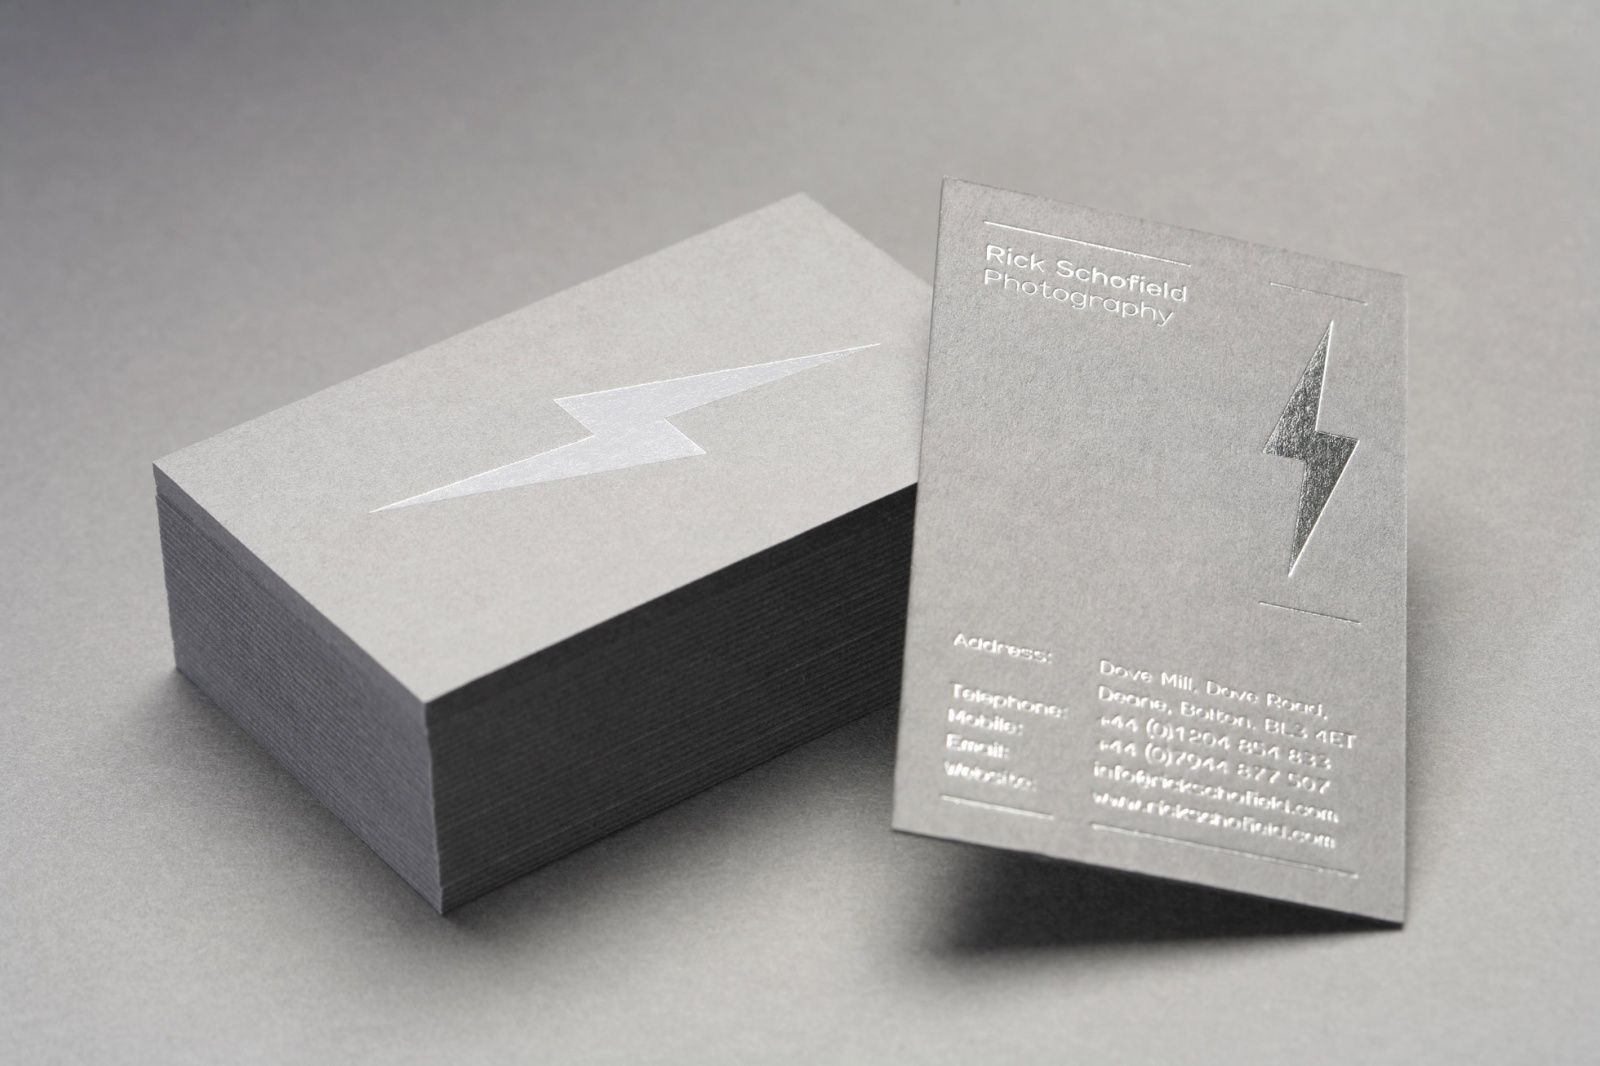 Business cards with a grey board a silver foil print finish for Rick ...